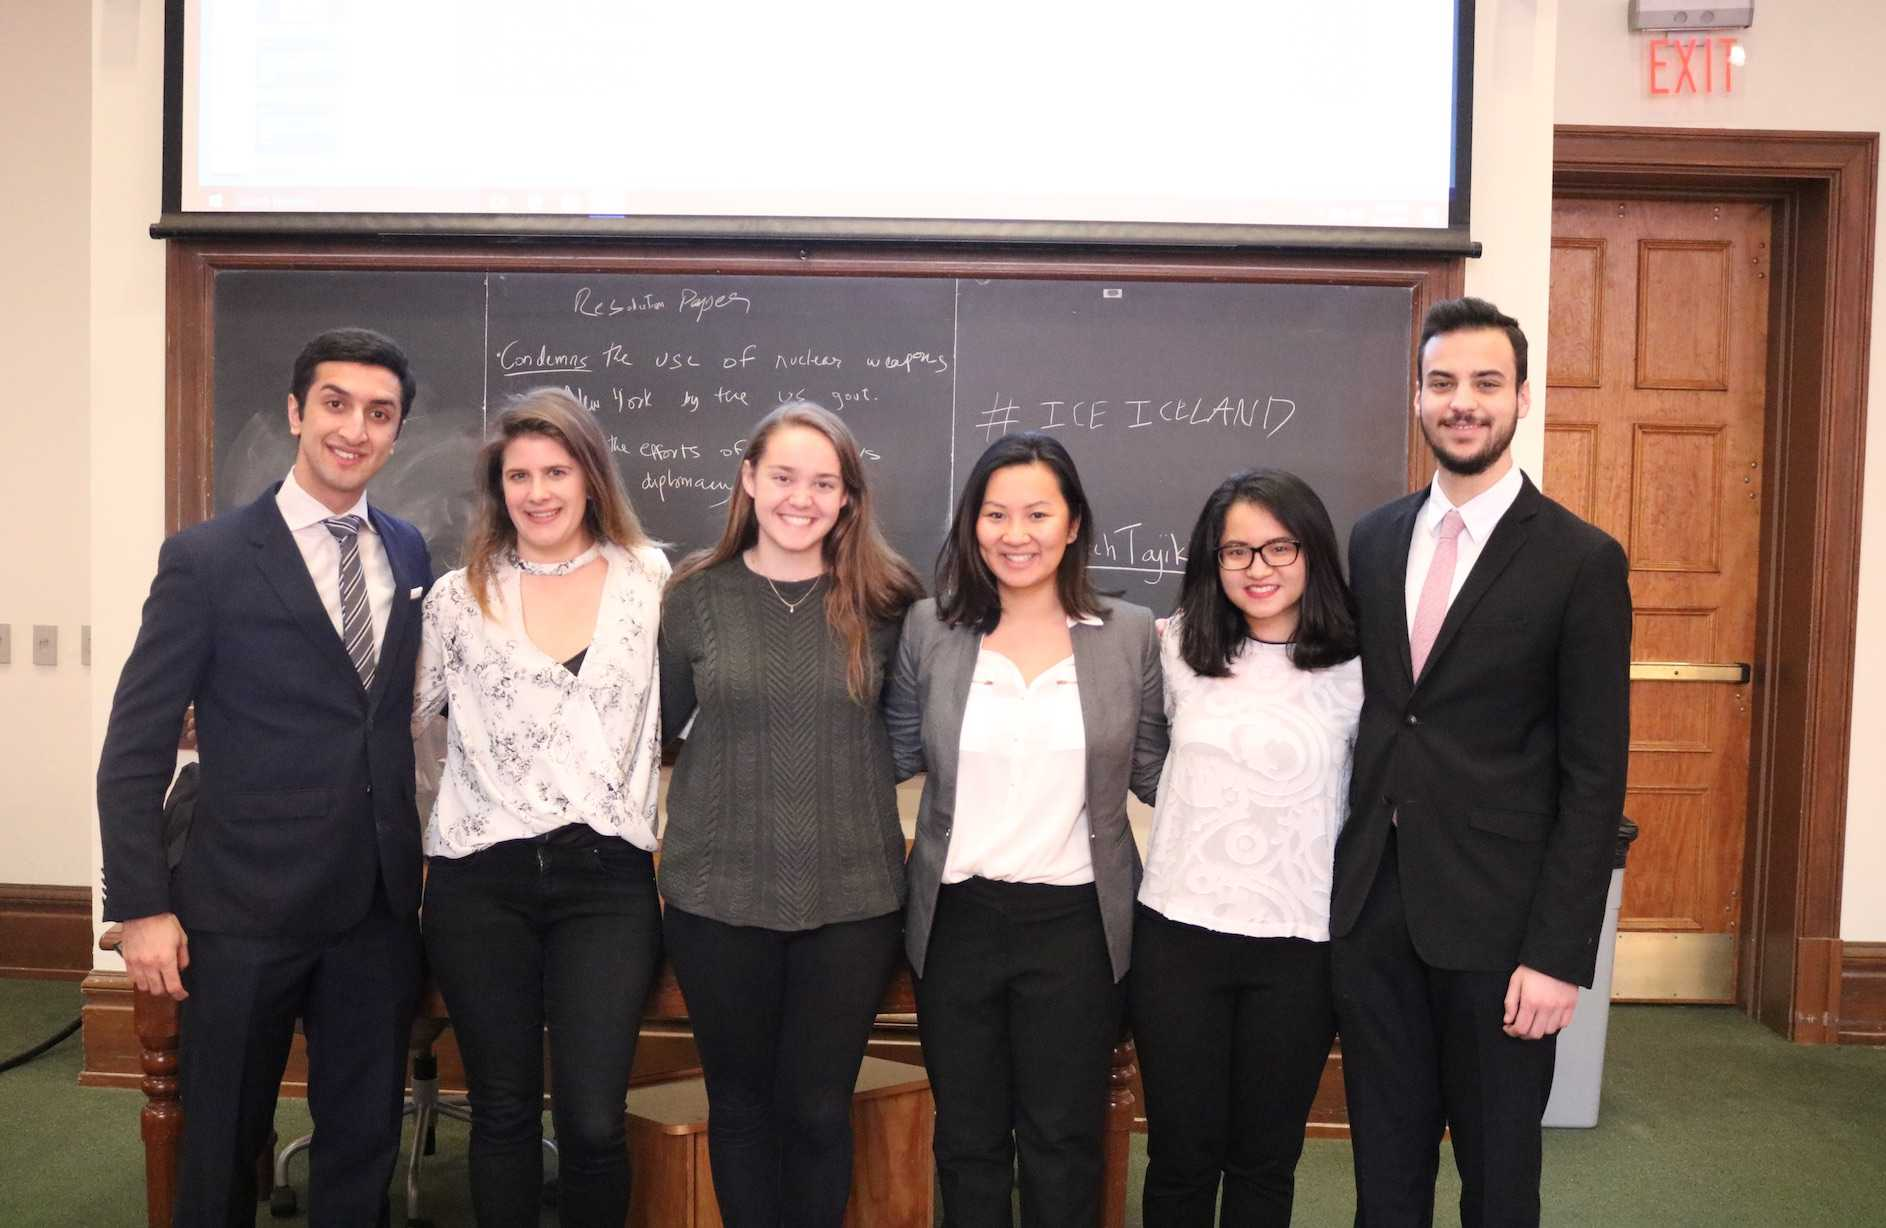 The executive board of MUN from left to right: Abdullah Rumman '20, Zita Petrahai '18, Alyssa Morrissey '20, Meagan Dashcund '18, Anh Nguyen '18 and Daniel Duchaine '18.  Missing: Gaby Fleming '19.